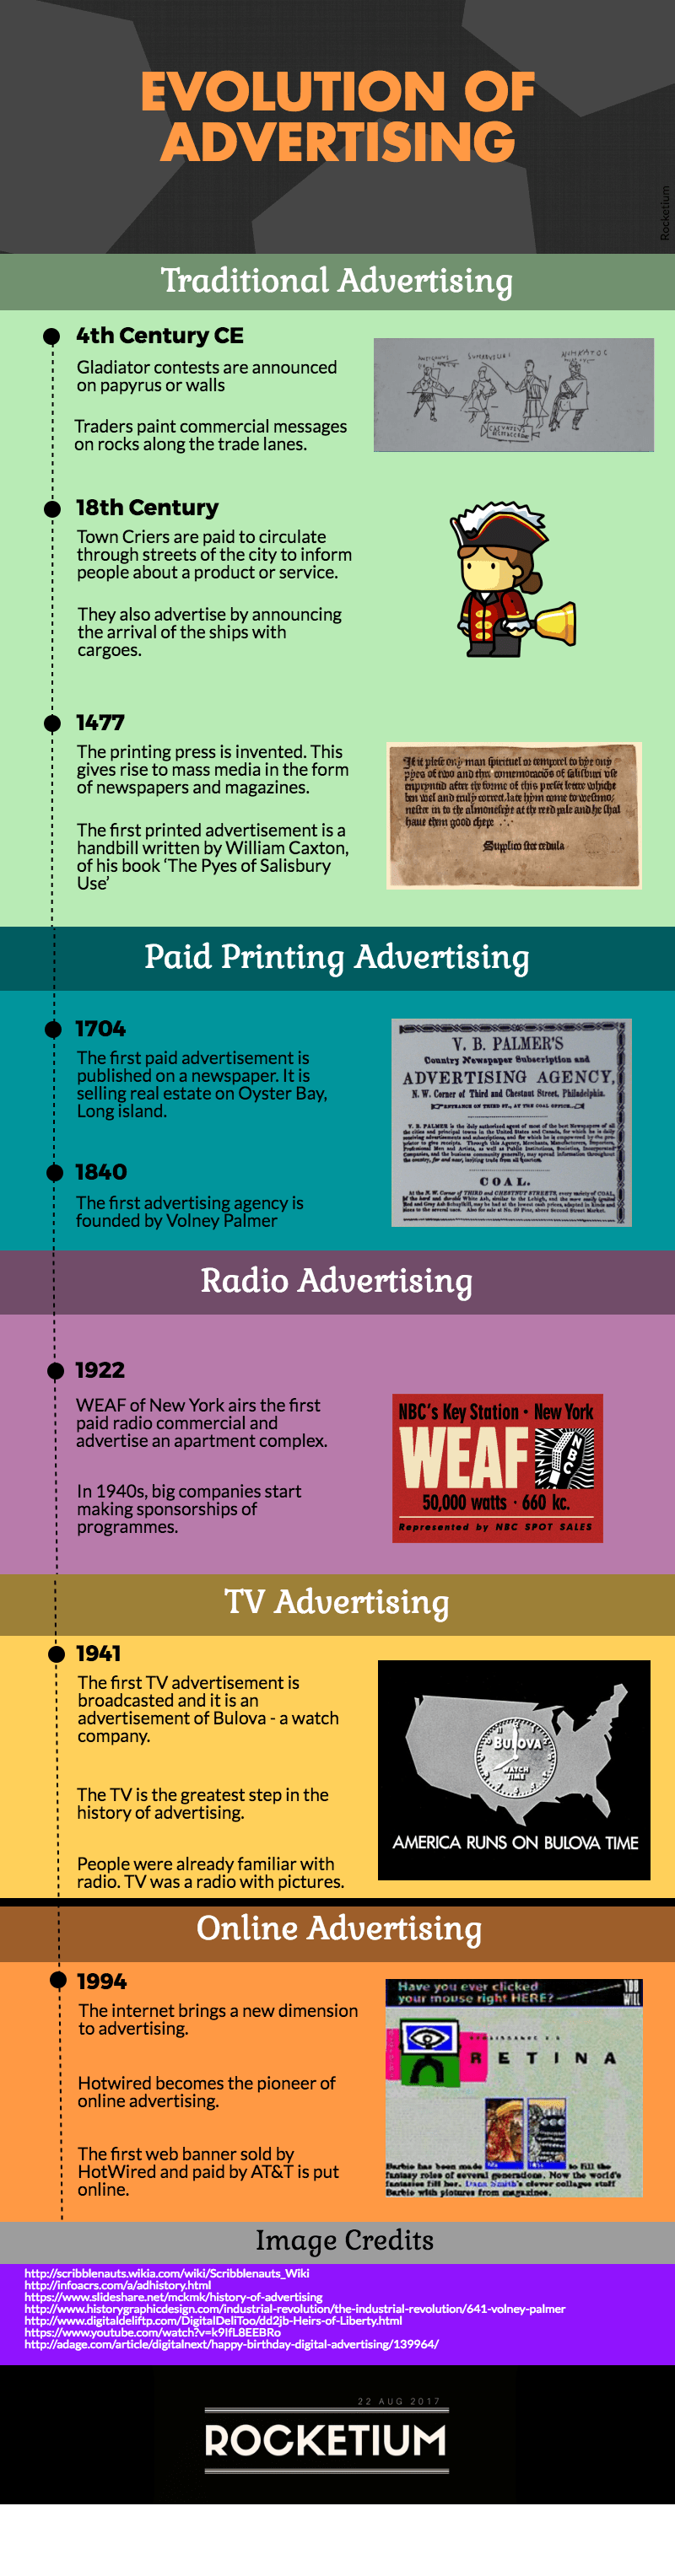 infographic evolution of advertisements Rocketium